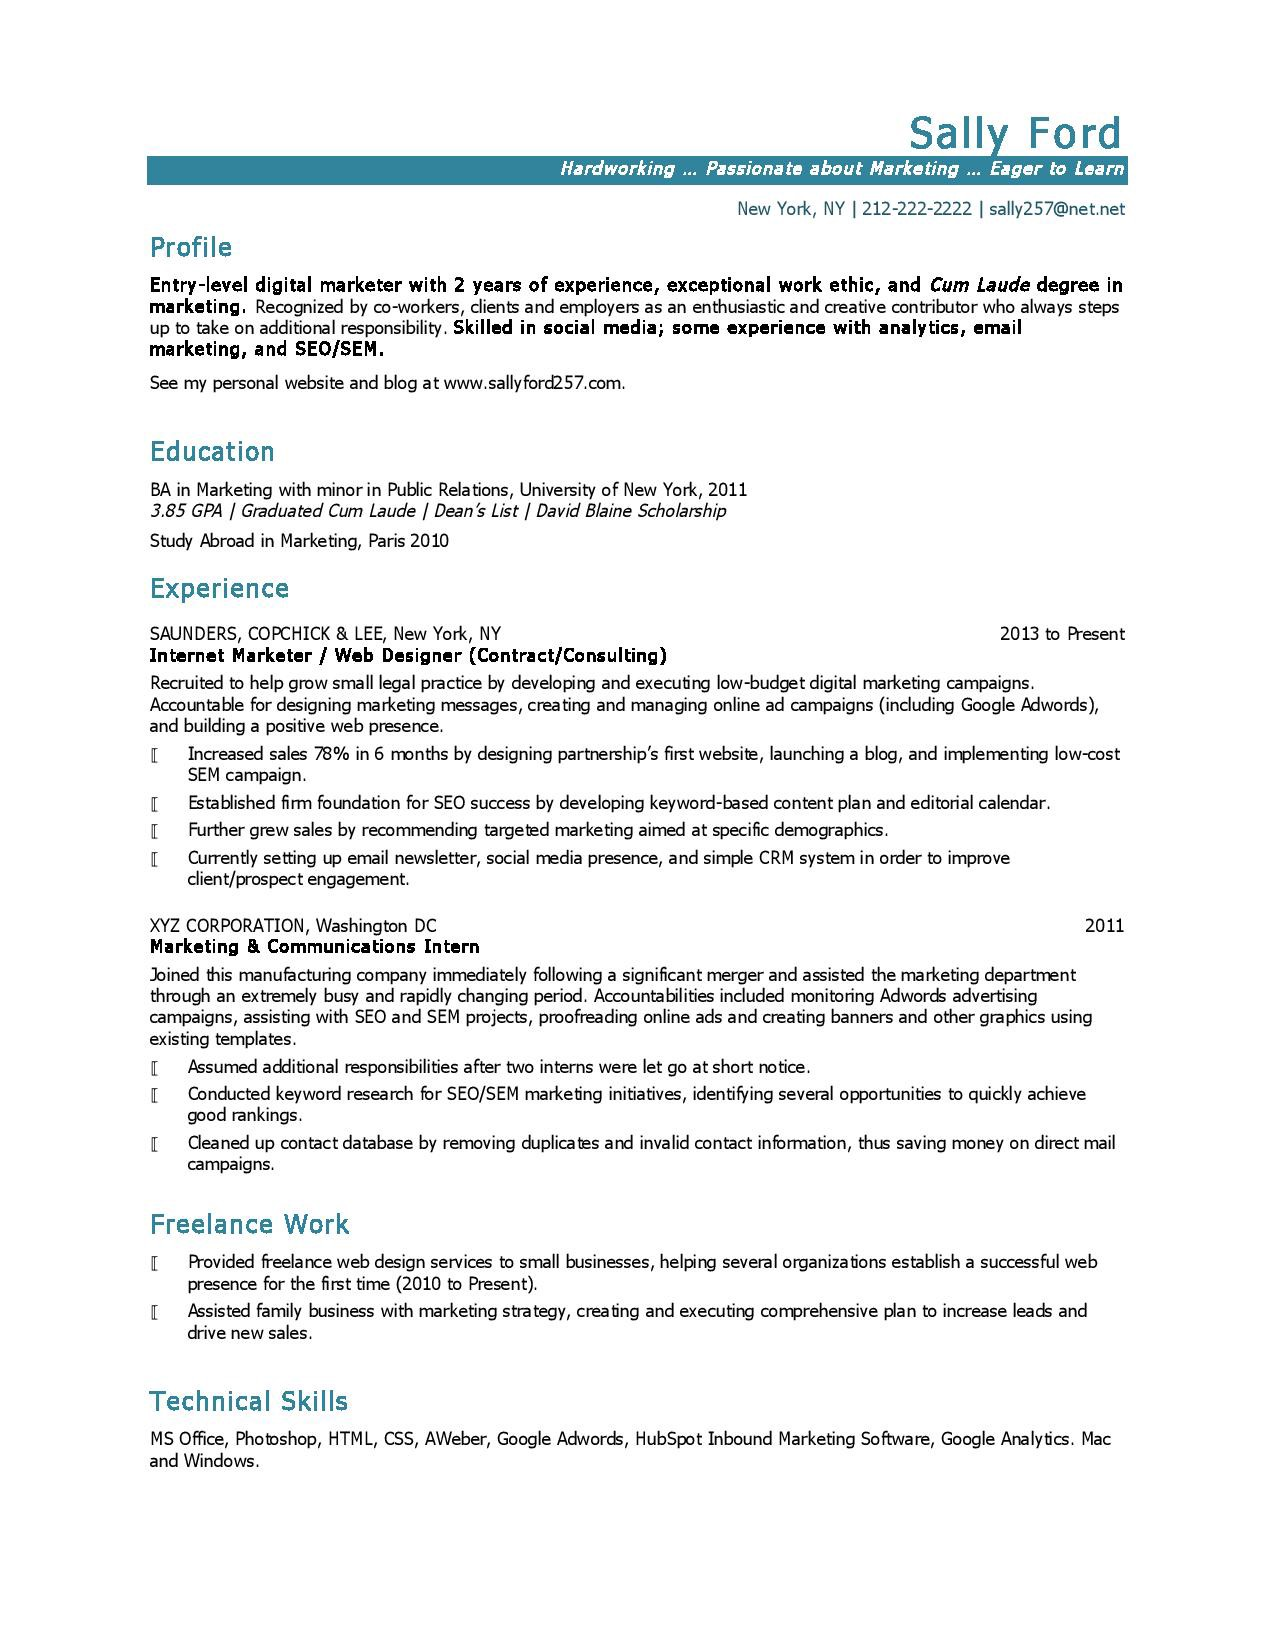 10 Marketing Resume Samples Hiring Managers Will Notice By